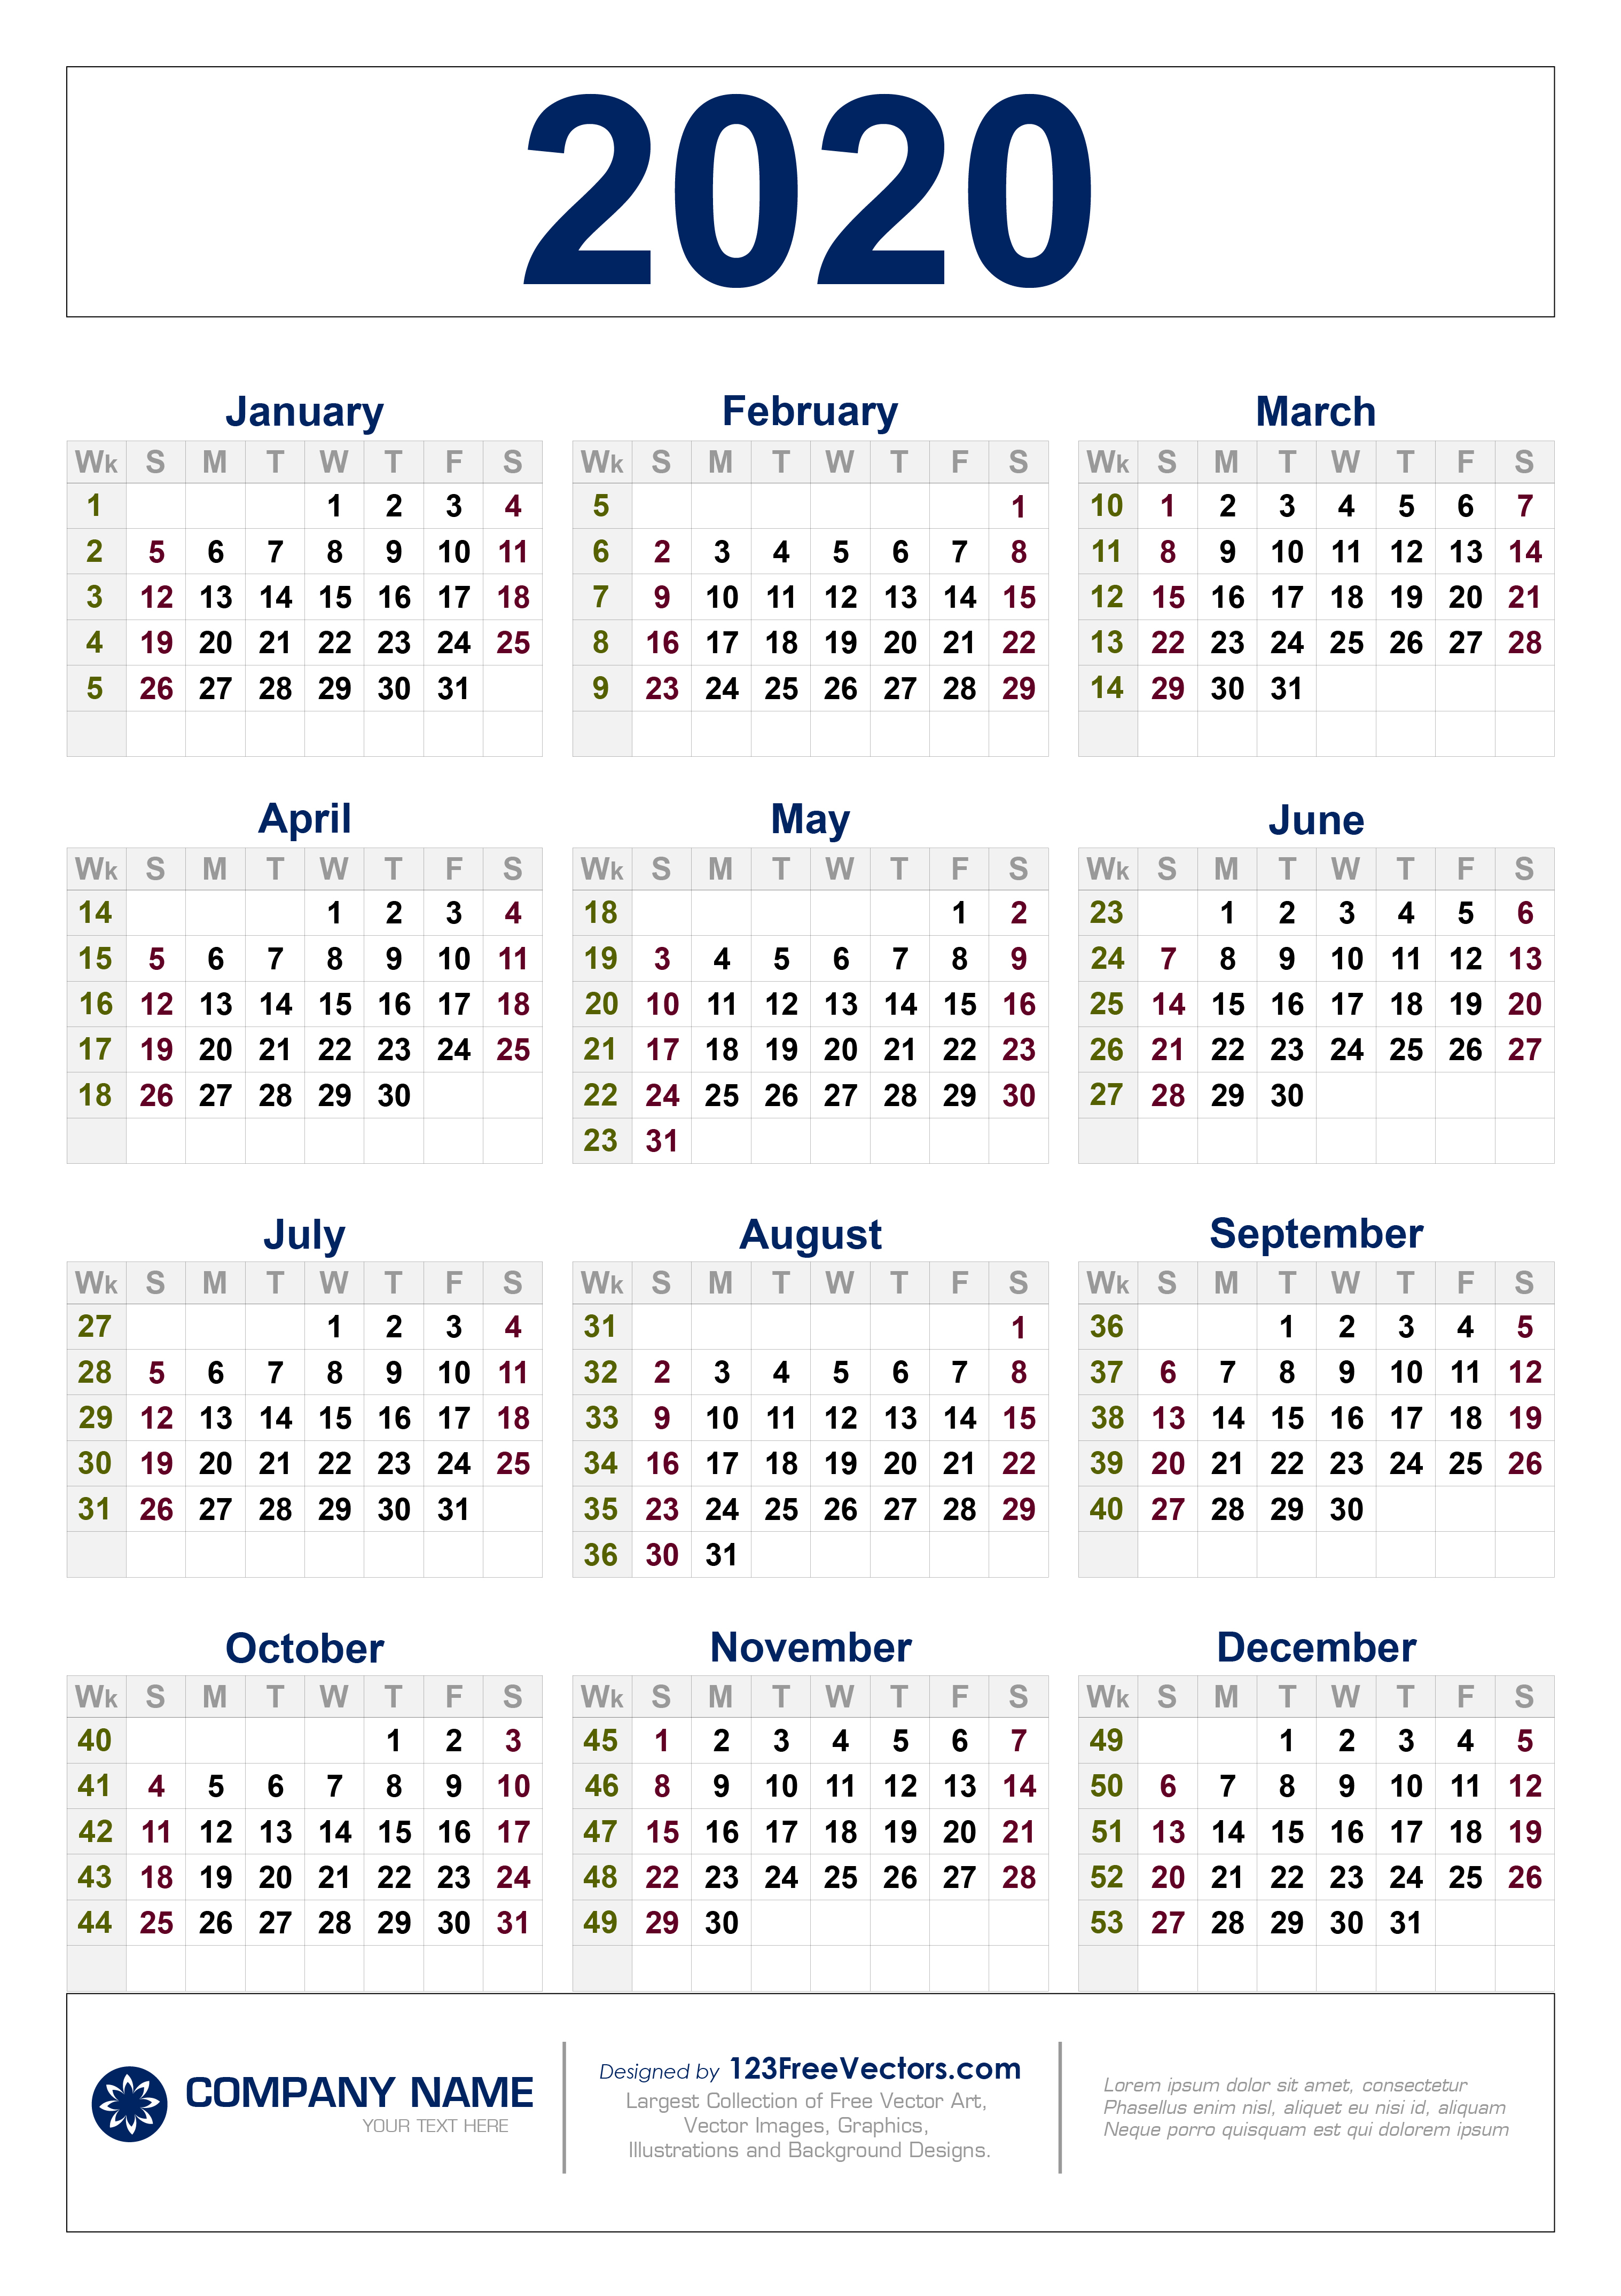 Free Download 2020 Calendar With Week Numbers pertaining to 2020 Calendar Free